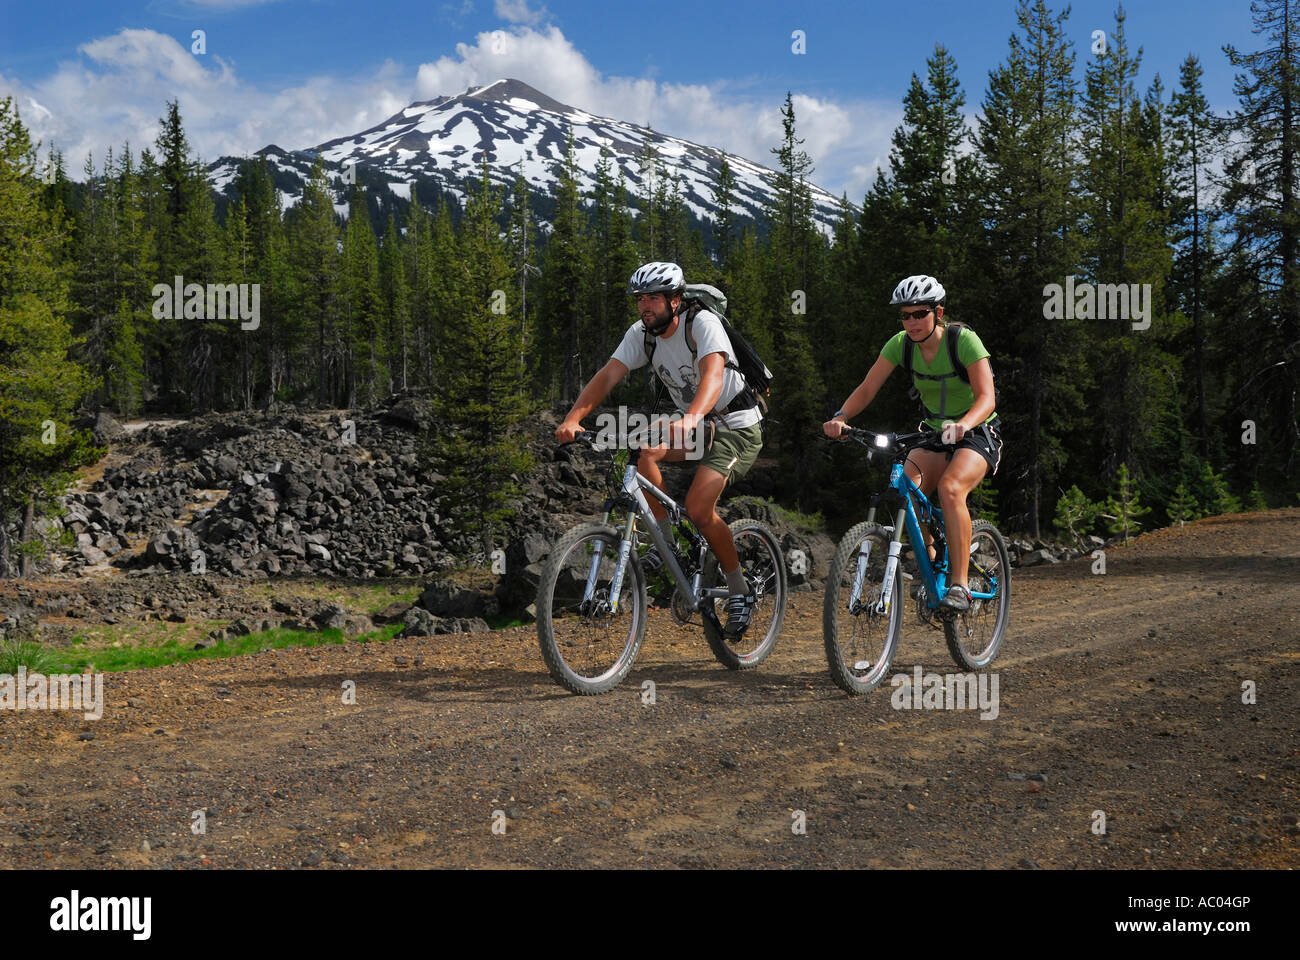 Mountain bikers in helmets traveling a dirt road under snow capped Mount Bachelor Oregon USA - Stock Image